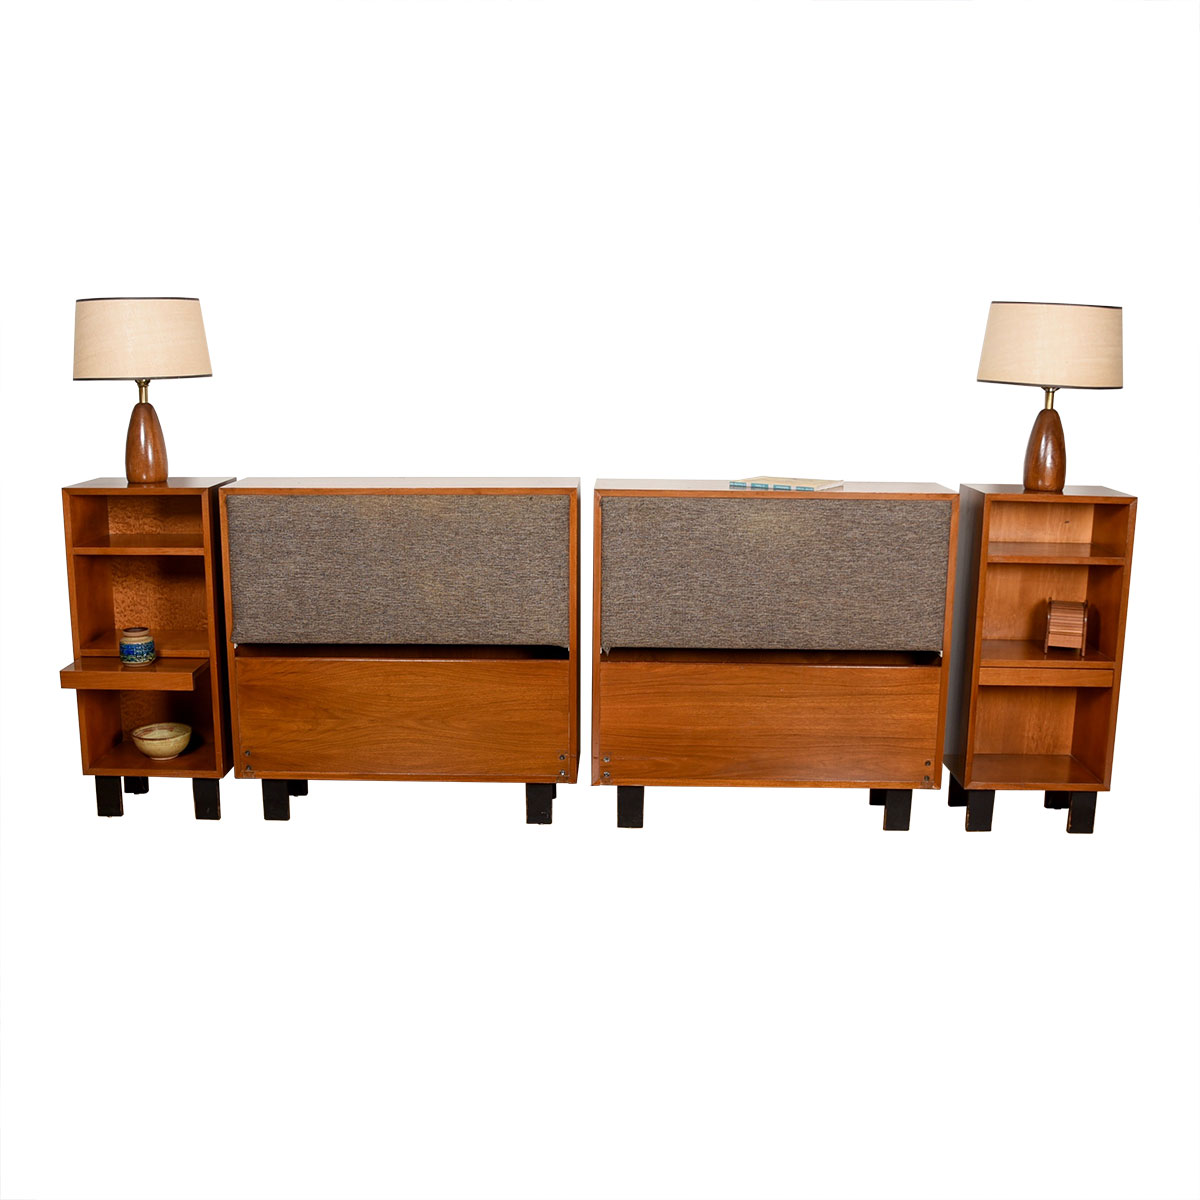 Pair of George Nelson Mid Century Modern Headboards & Nightstands for Herman Miller